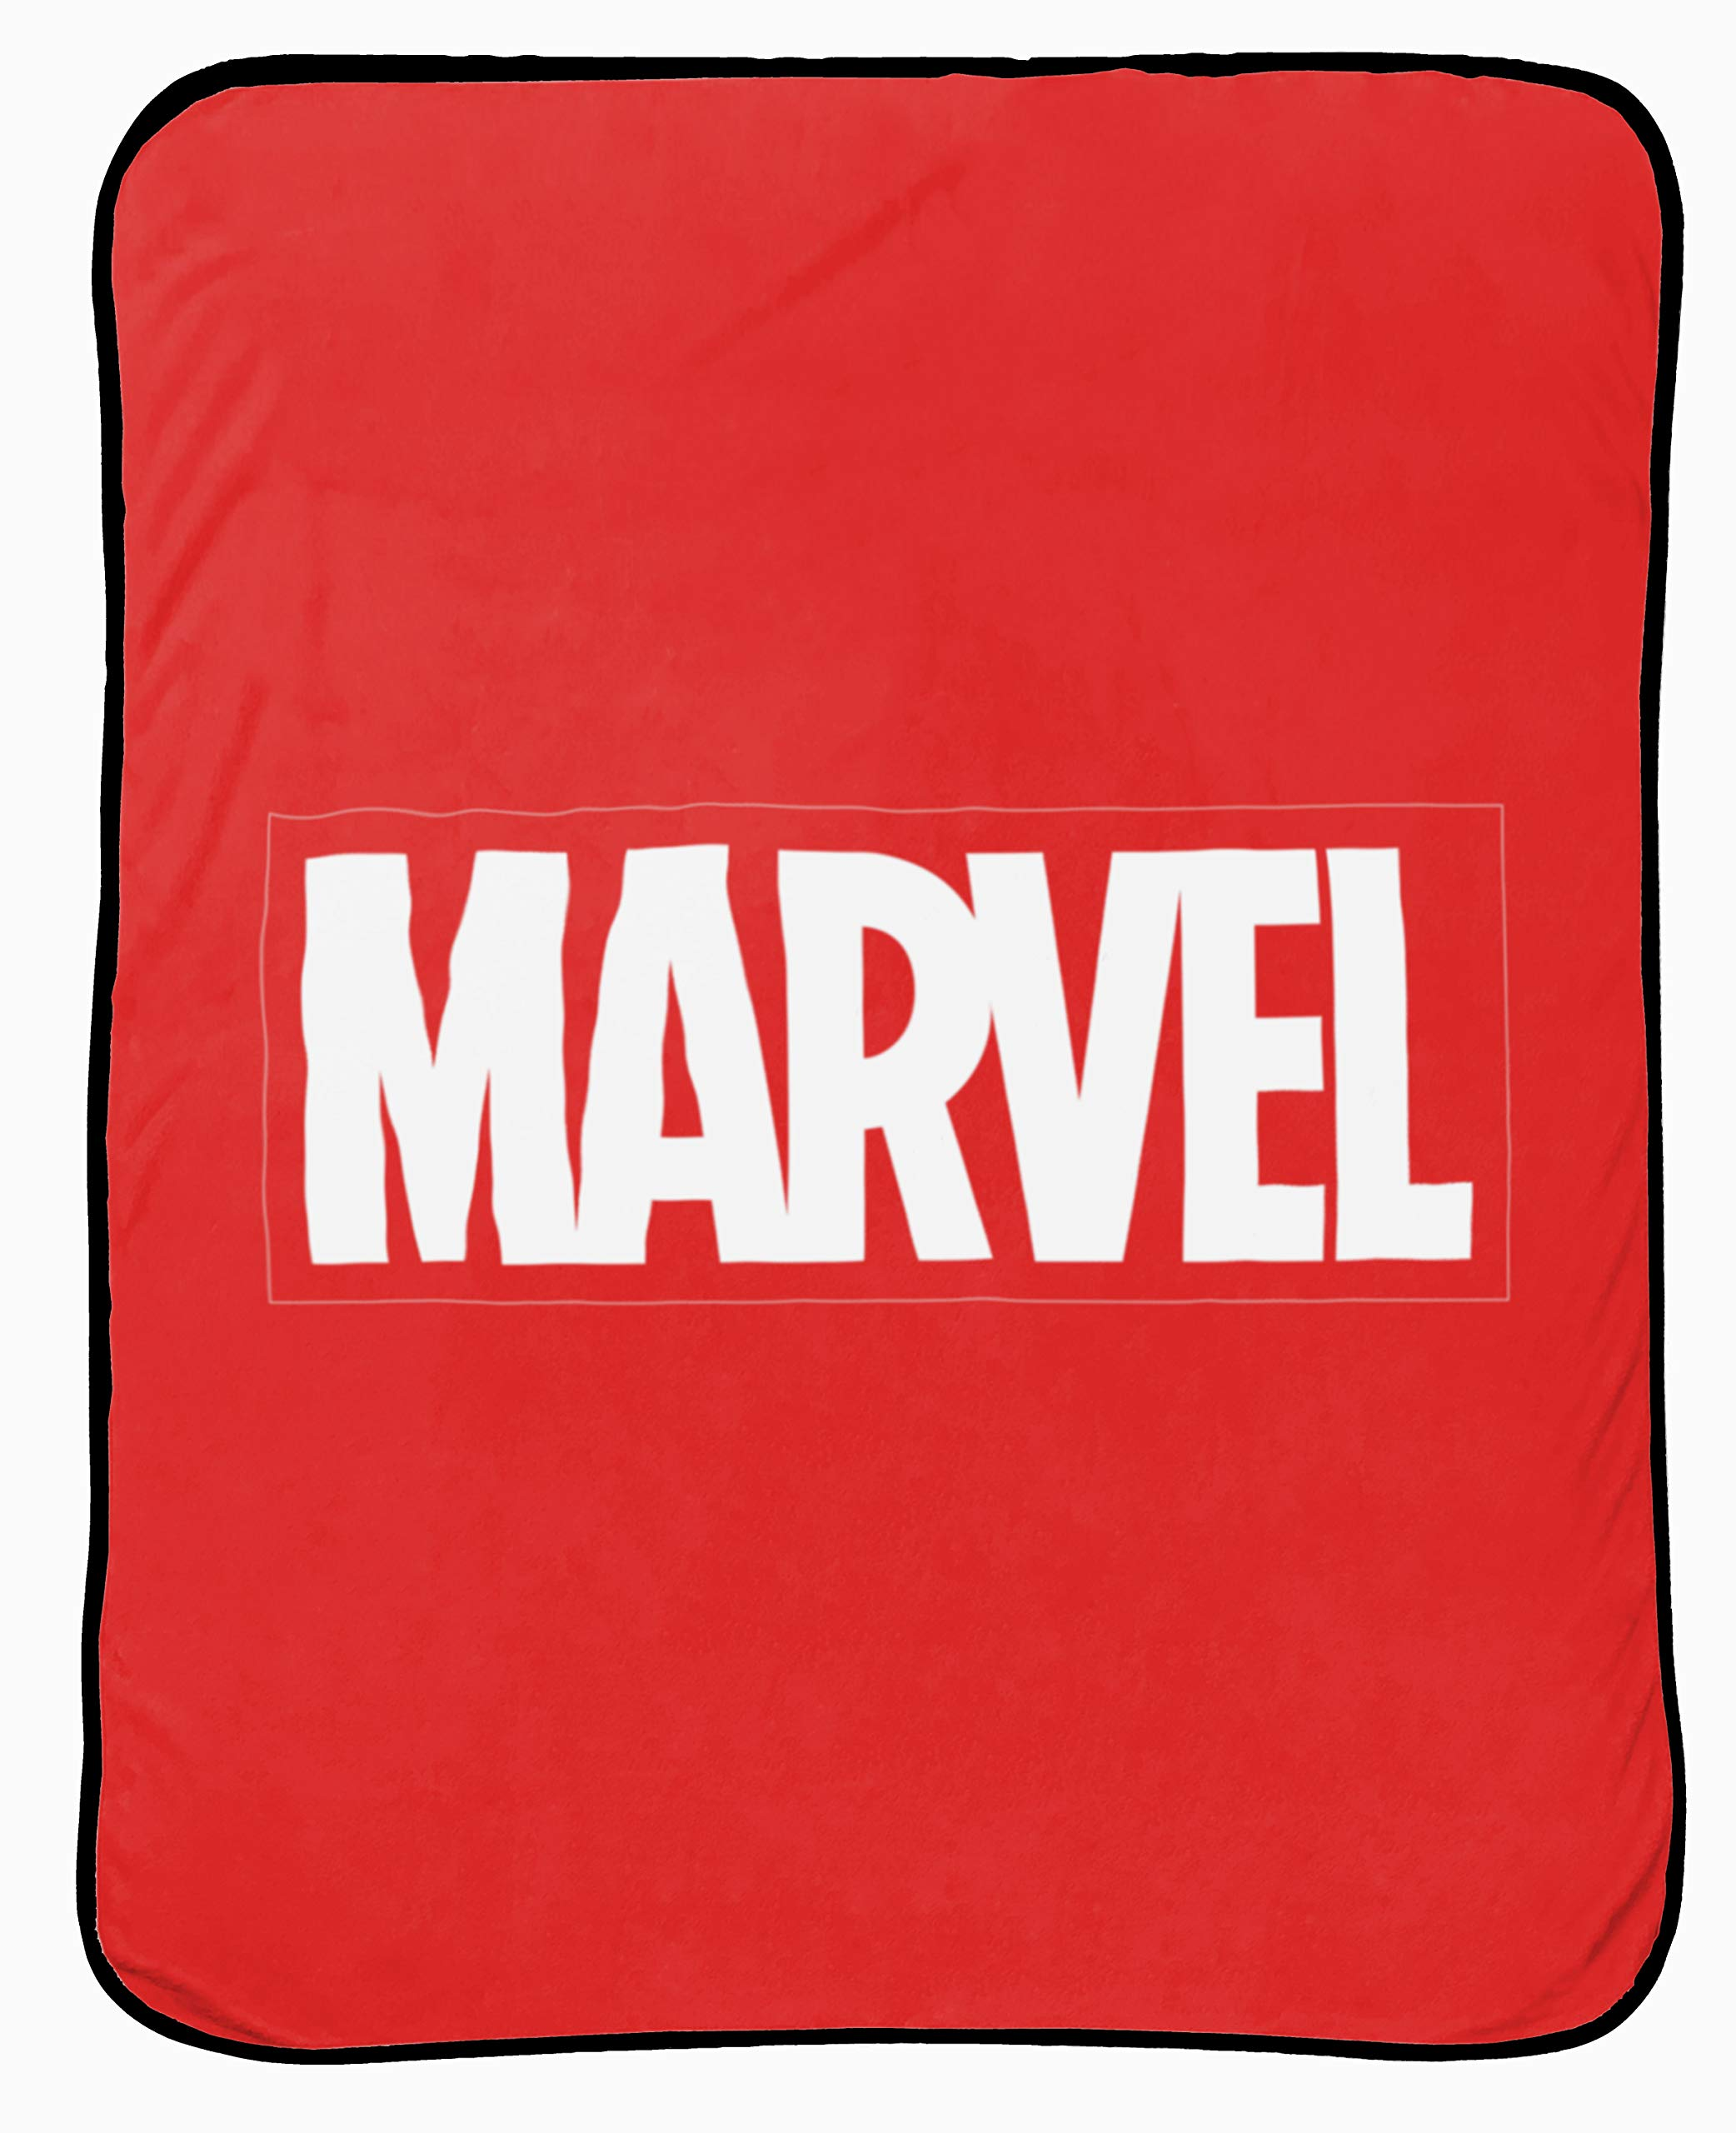 Jay Franco Marvel Logo Throw Blanket - Measures 46 x 60 inches, Kids Bedding - Fade Resistant Super Soft (Official Marvel Product)